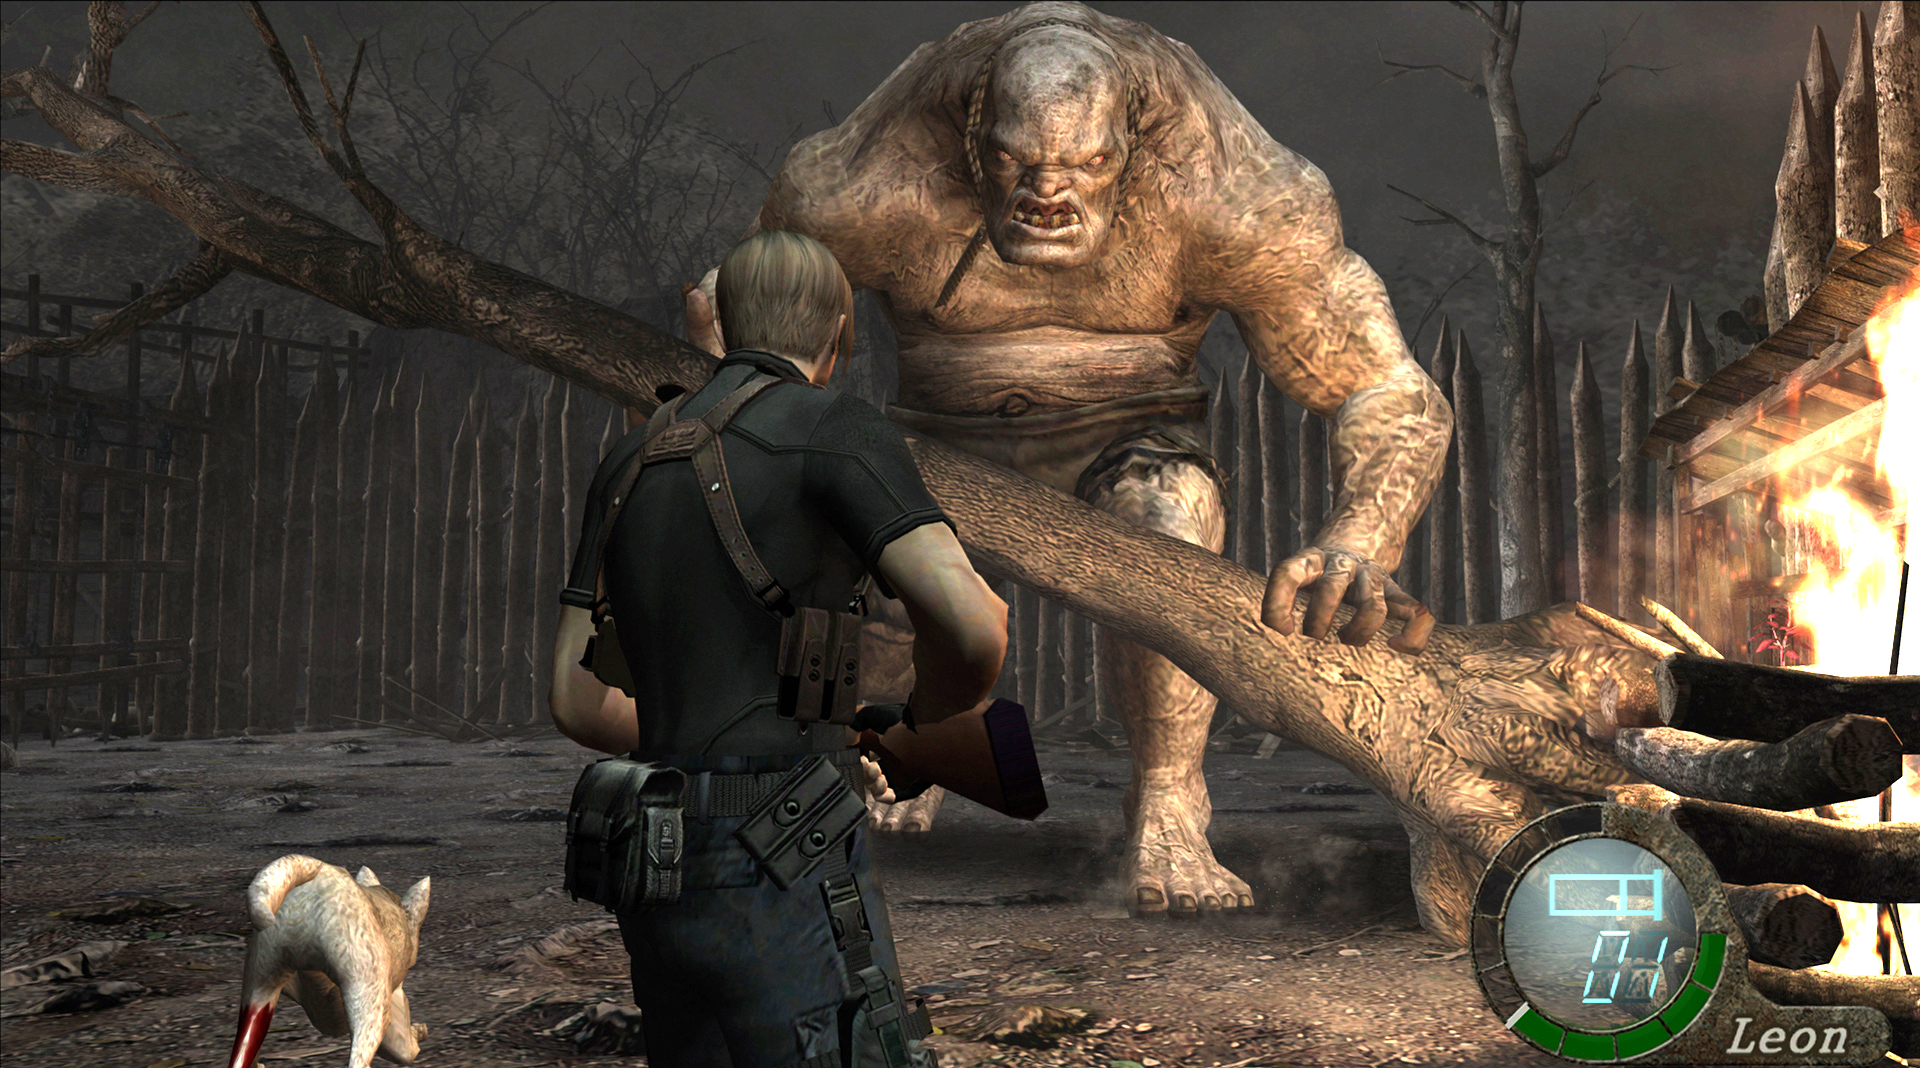 resident-evil-4-free-download-pc-torrent-full-version-crack-28.jpg